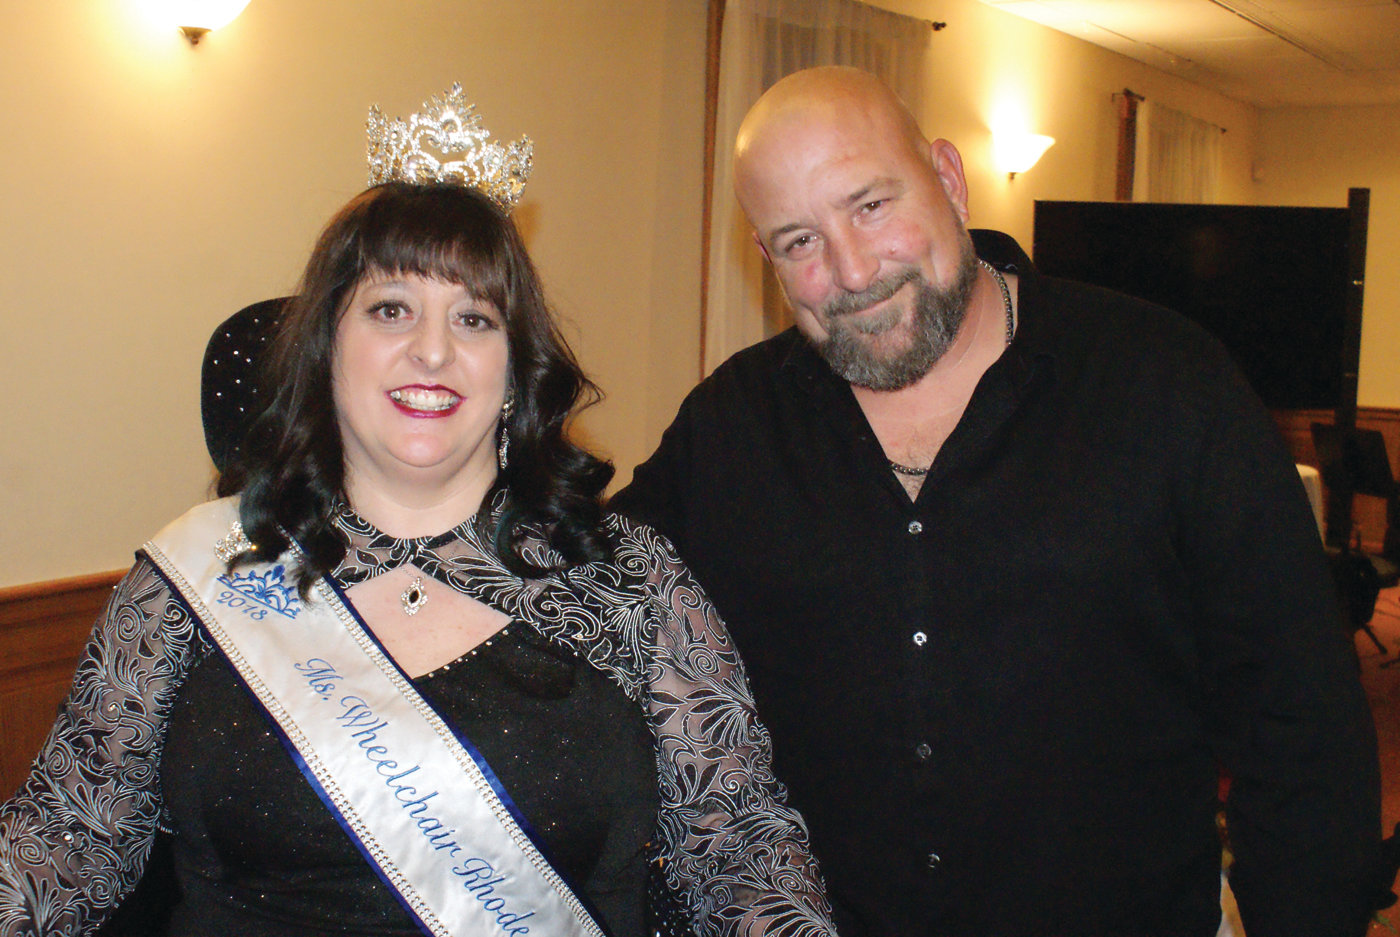 TEAMWORK: Ms. Wheelchair RI 2018 Tina Guenette Pedersen is pictured with Jason Brady, founder and CEO of Northern Command Studios. He served as the emcee for this year's event.